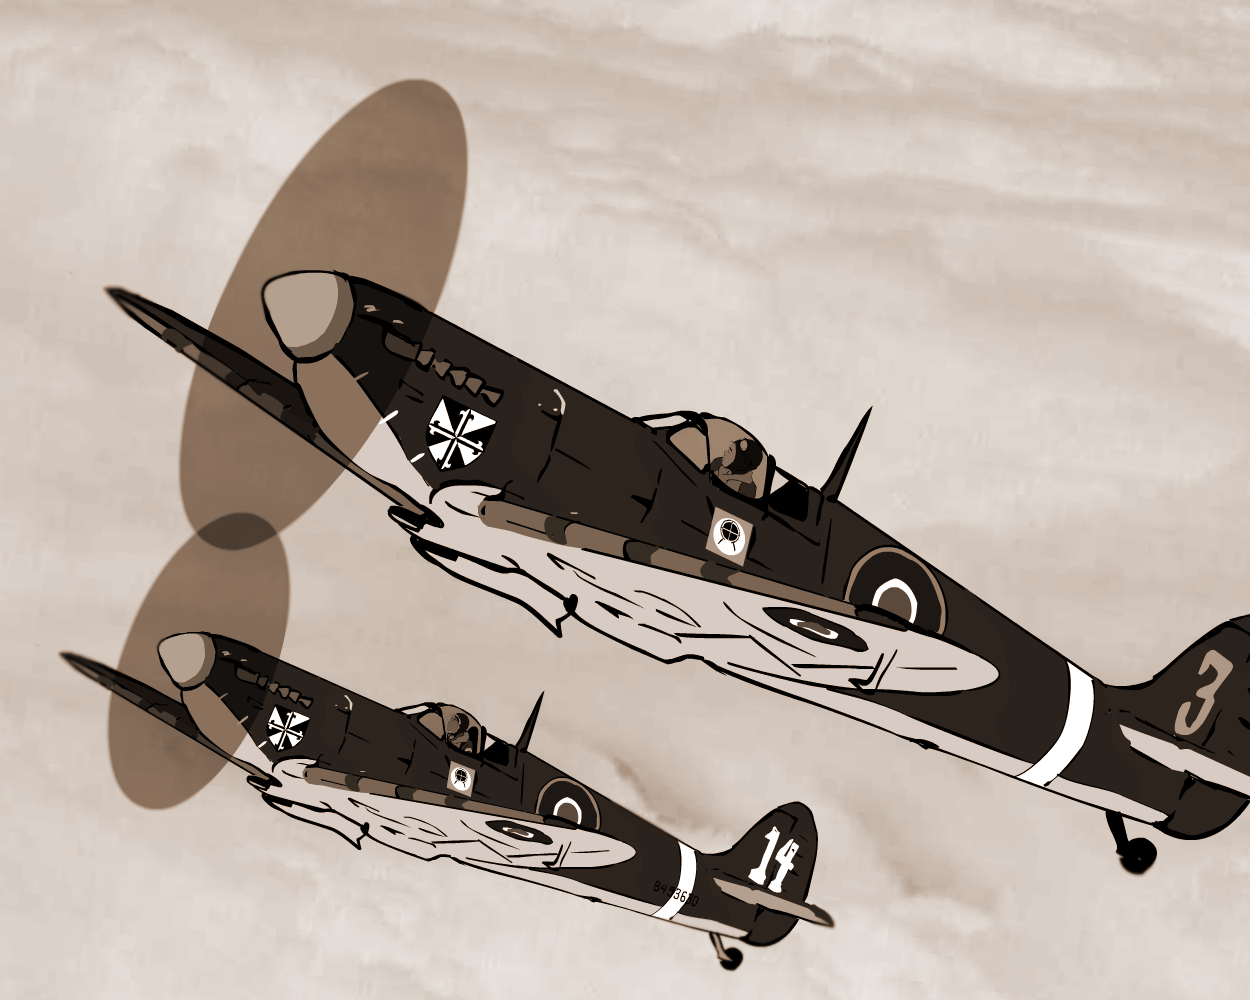 The Cross Squadron Spitfires